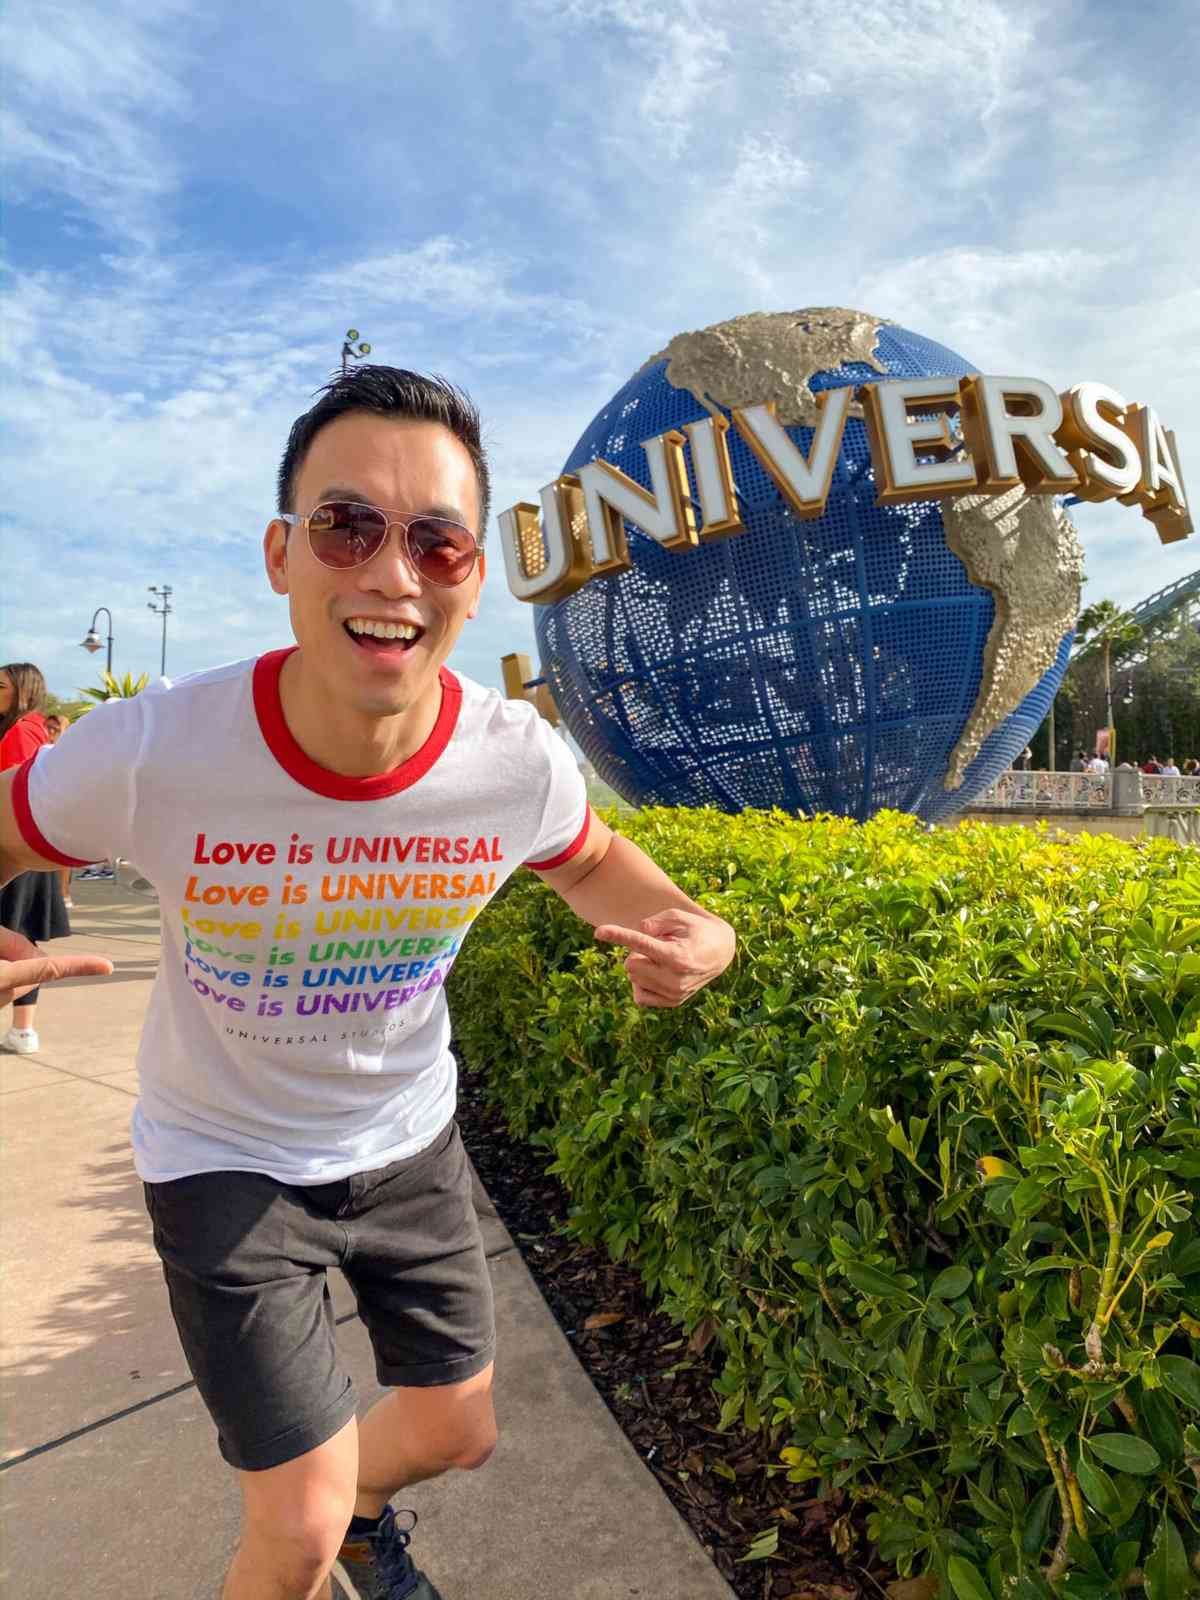 Universal Studios may not have an official gay pride event but they are very gay friendly